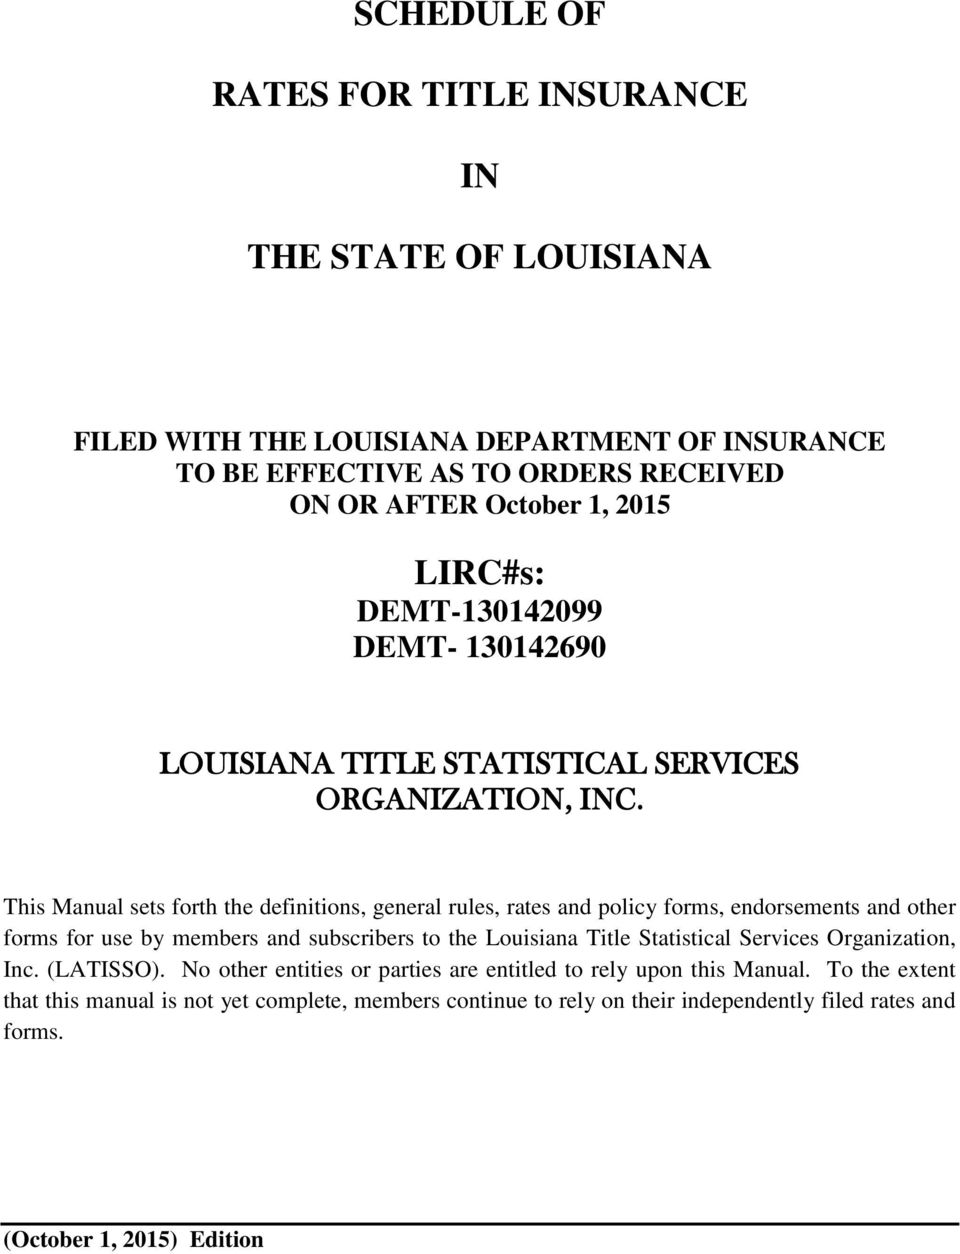 This Manual sets forth the definitions, general rules, rates and policy forms, endorsements and other forms for use by members and subscribers to the Louisiana Title